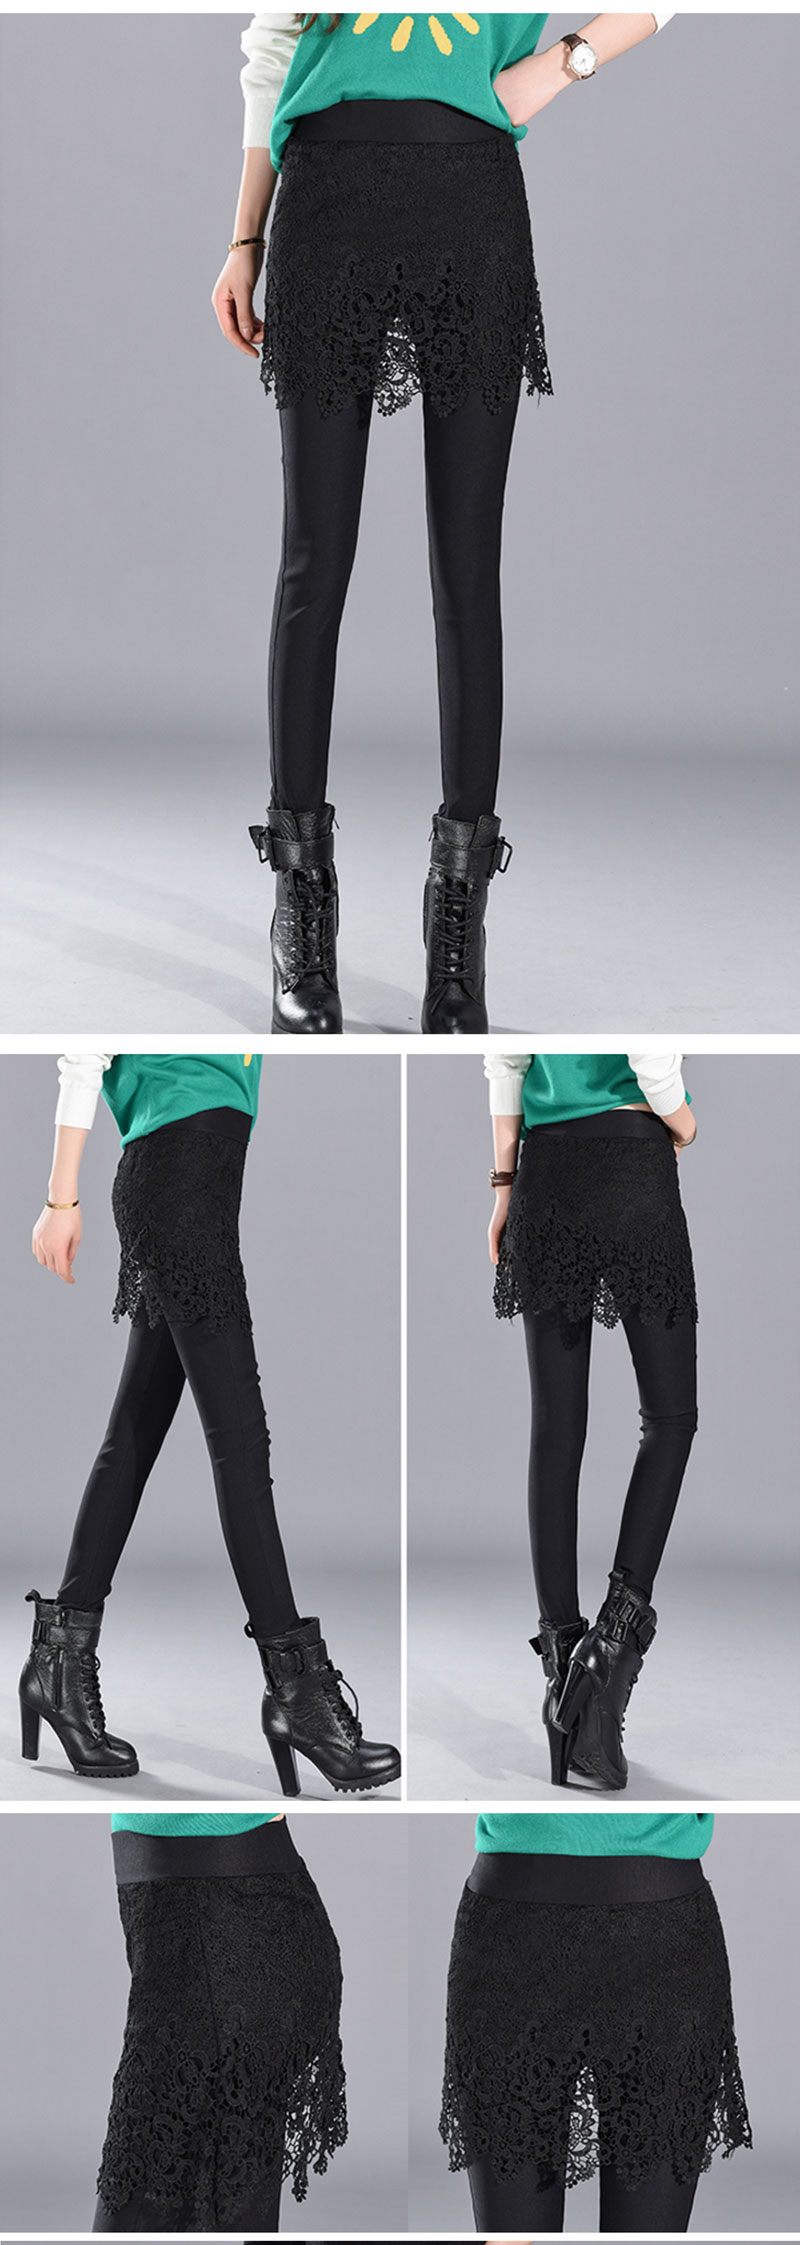 False-two-skirts-pants-Cultivate-one's-morality-to-wear-lace-and-velvet_01